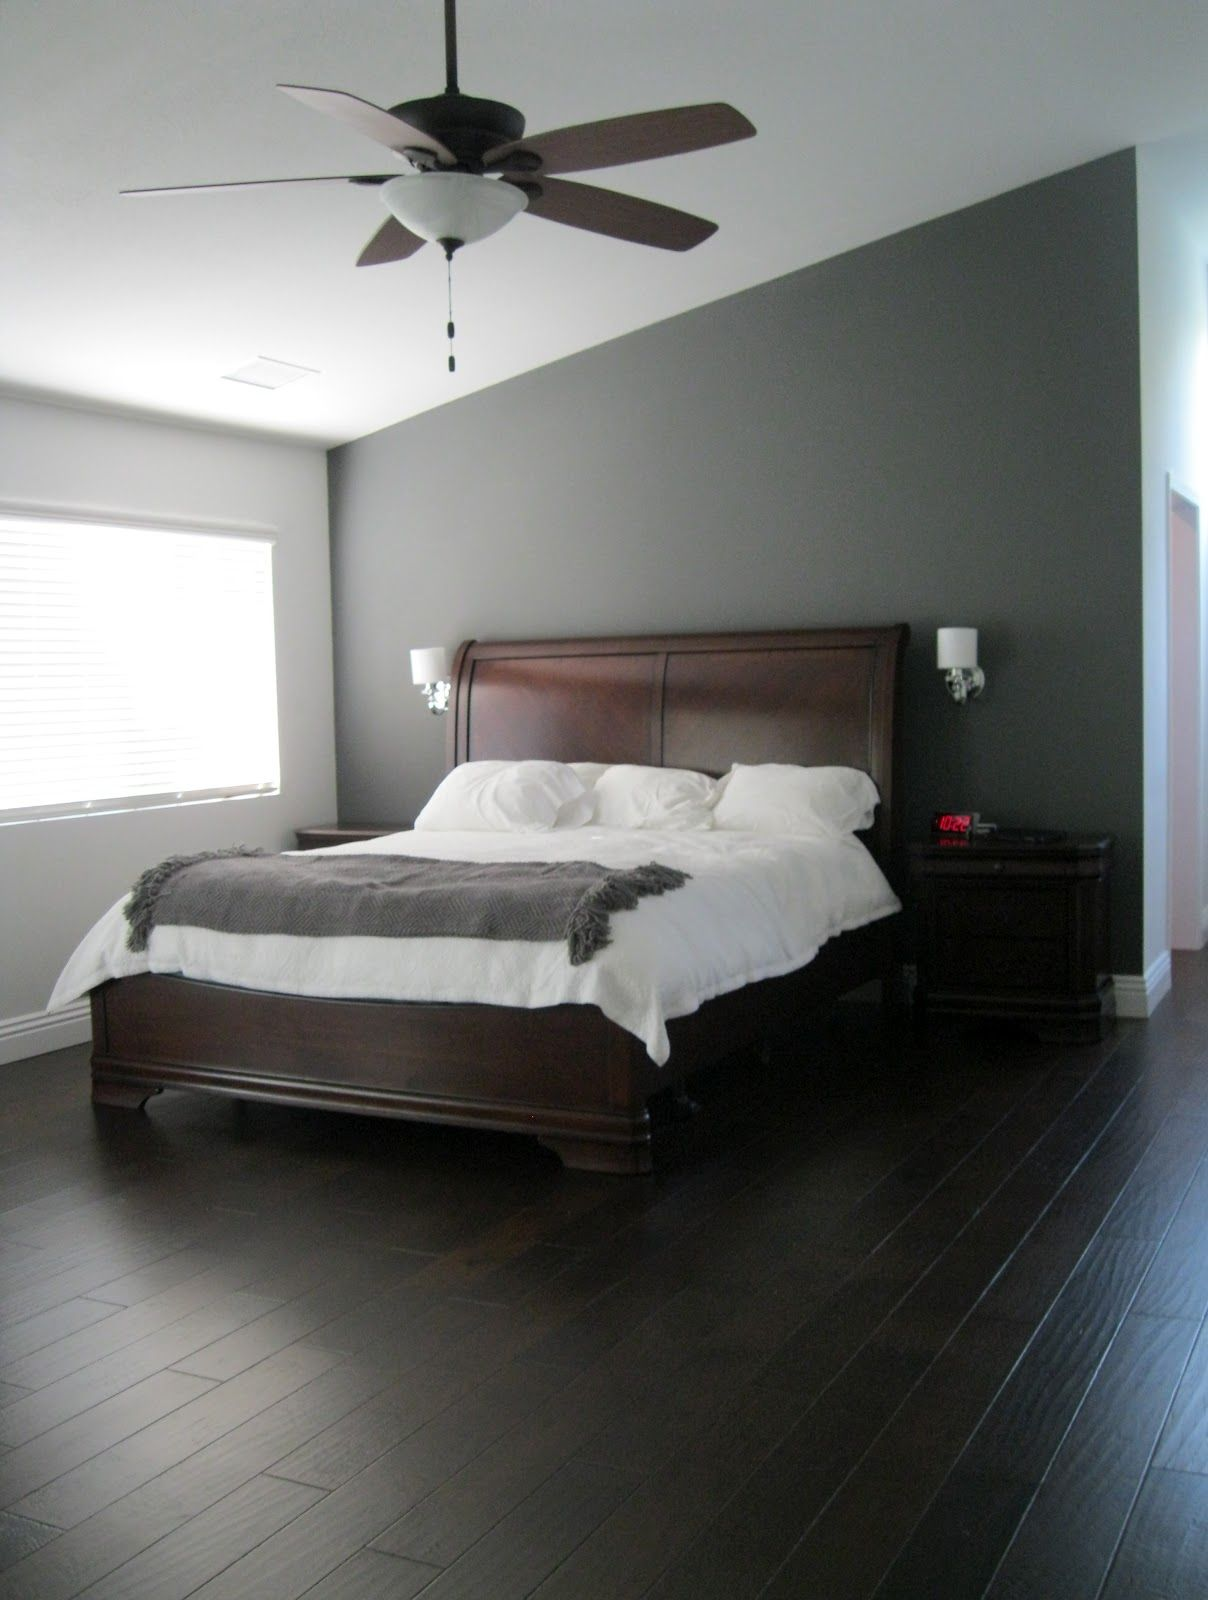 Bedroom colors with brown furniture - Very Popular Unique Brown Wooden Master Bed Plus Headboard With White Covering Beds And Smart Wood